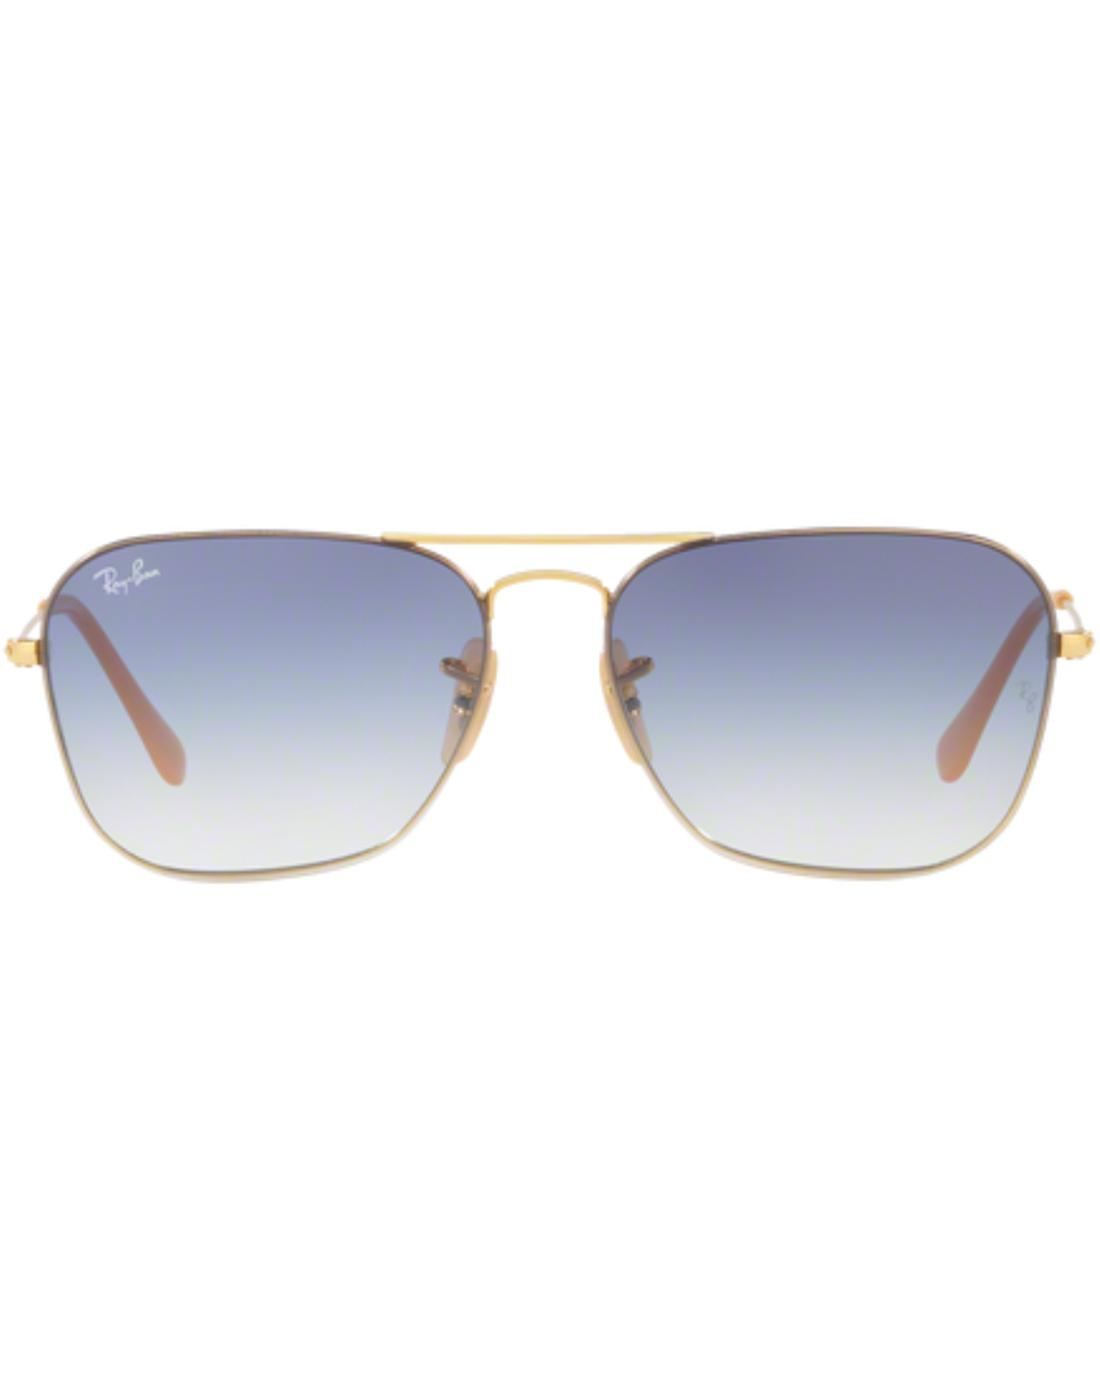 RAY-BAN Retro 70s Mod Small Caravan Sunglasses Bl